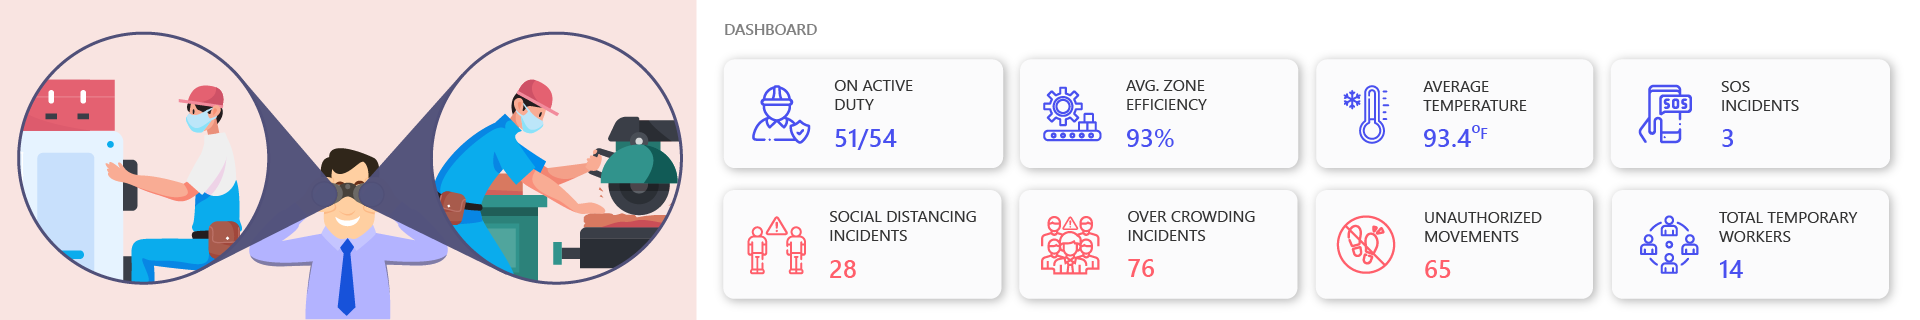 Employee Monitoring and Tracking